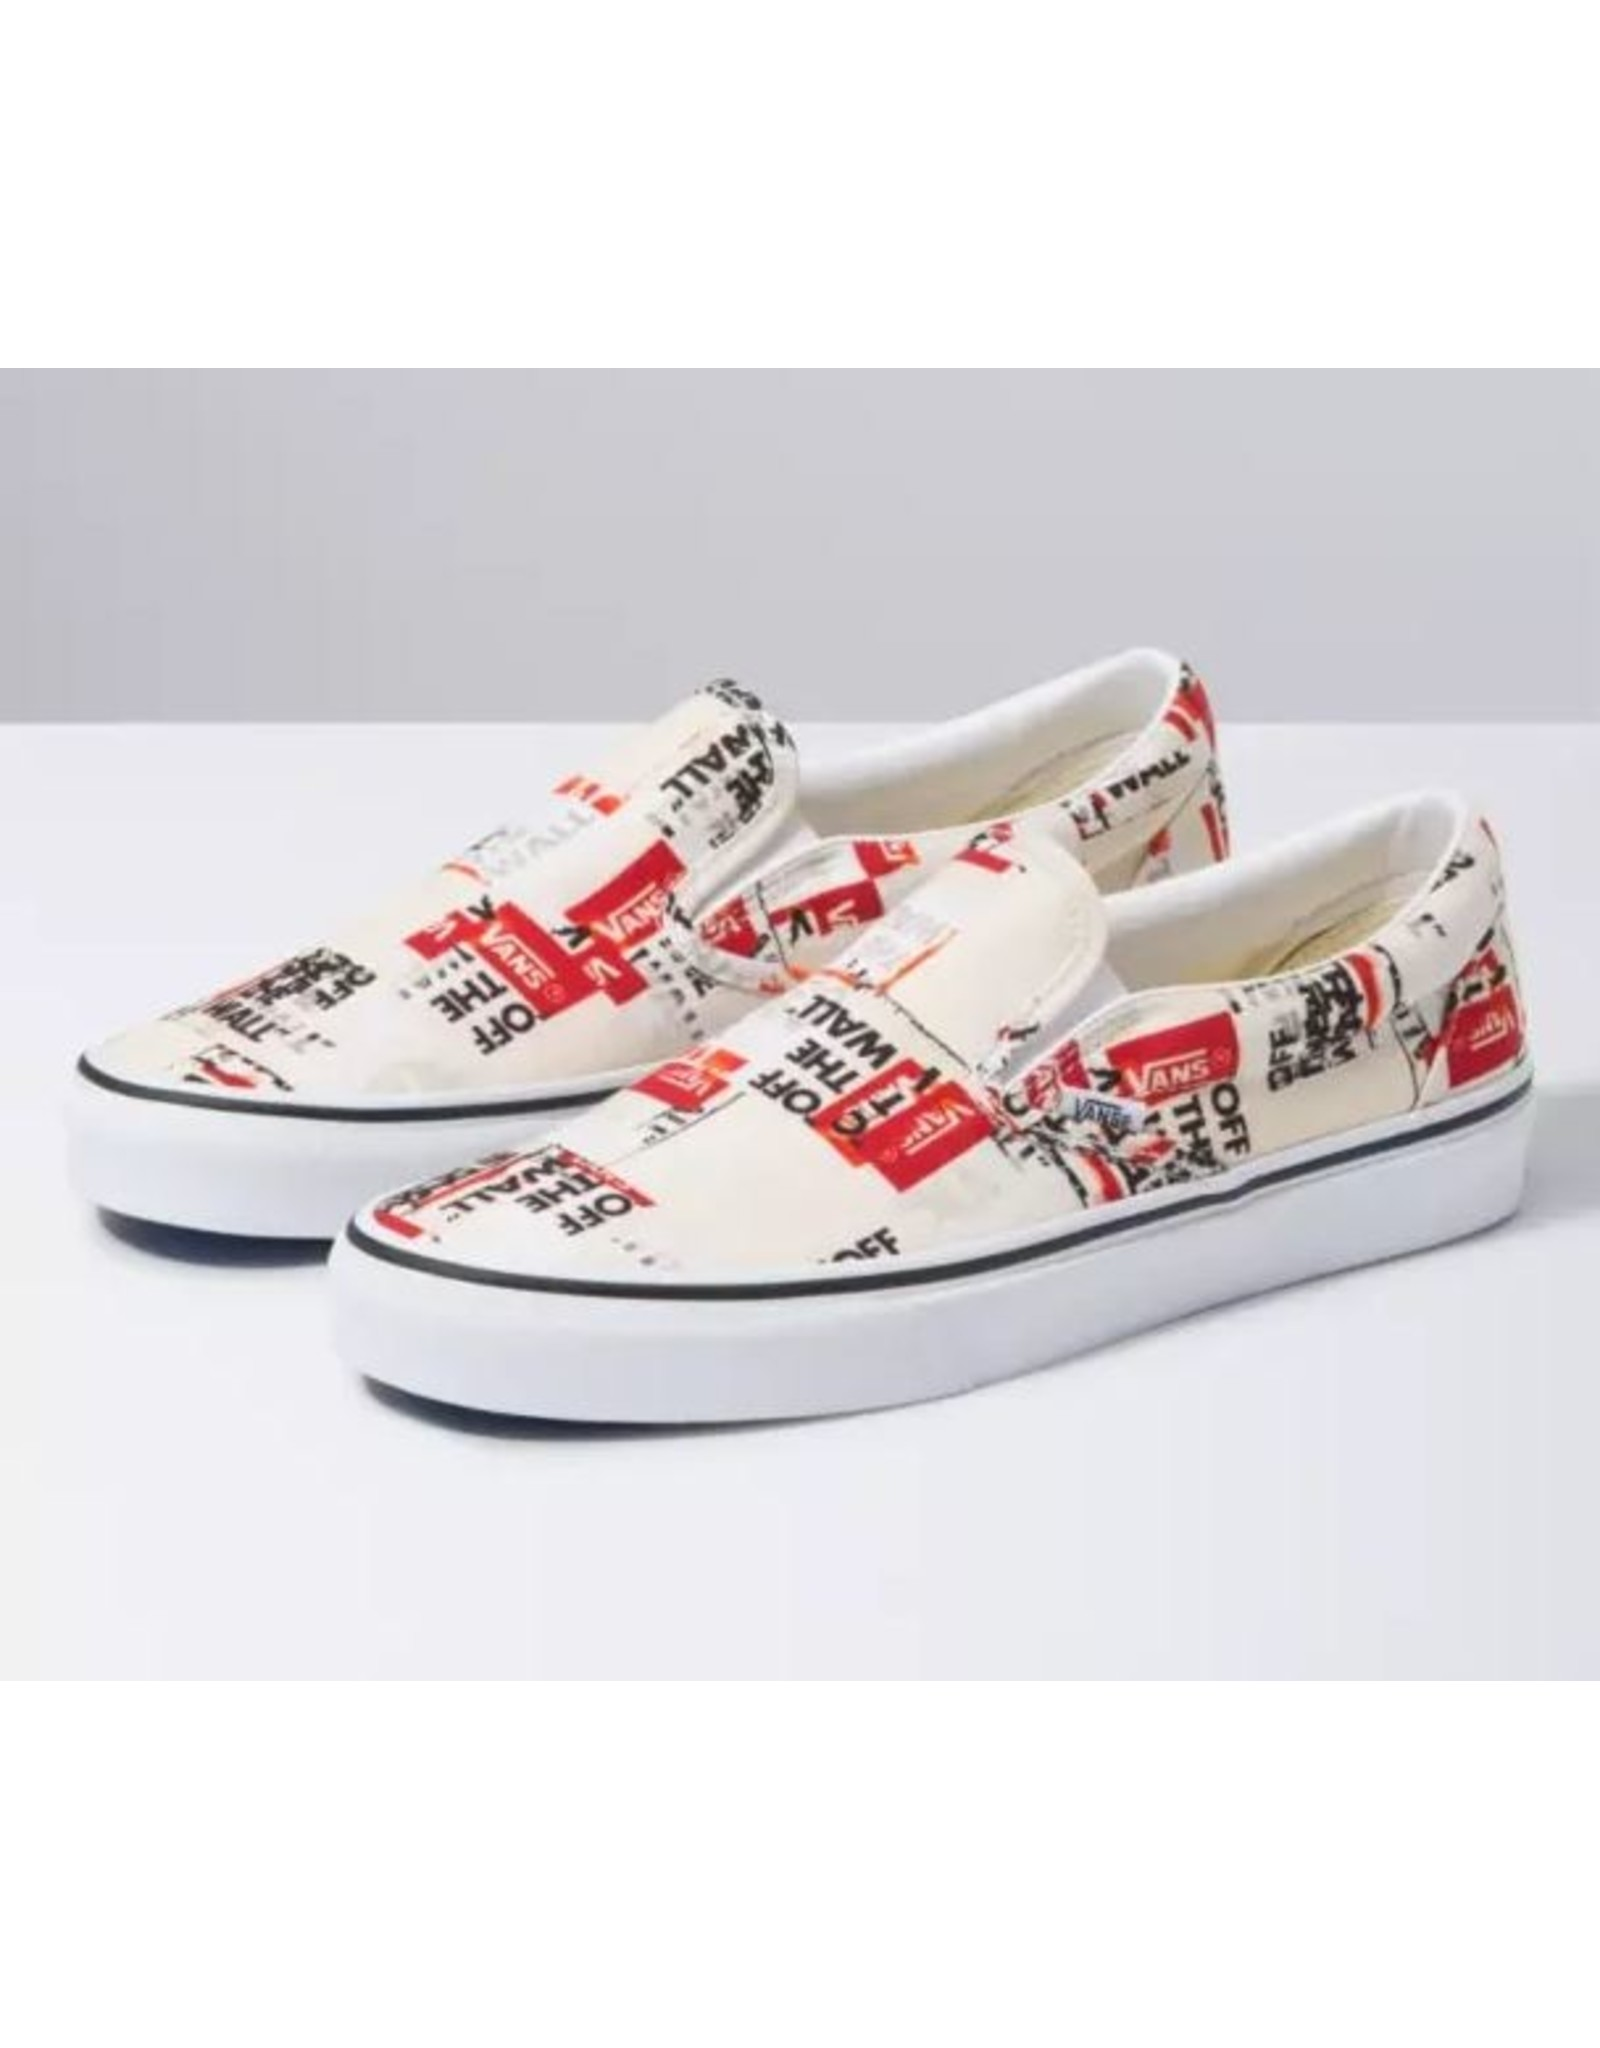 Vans Men's Packing Tape